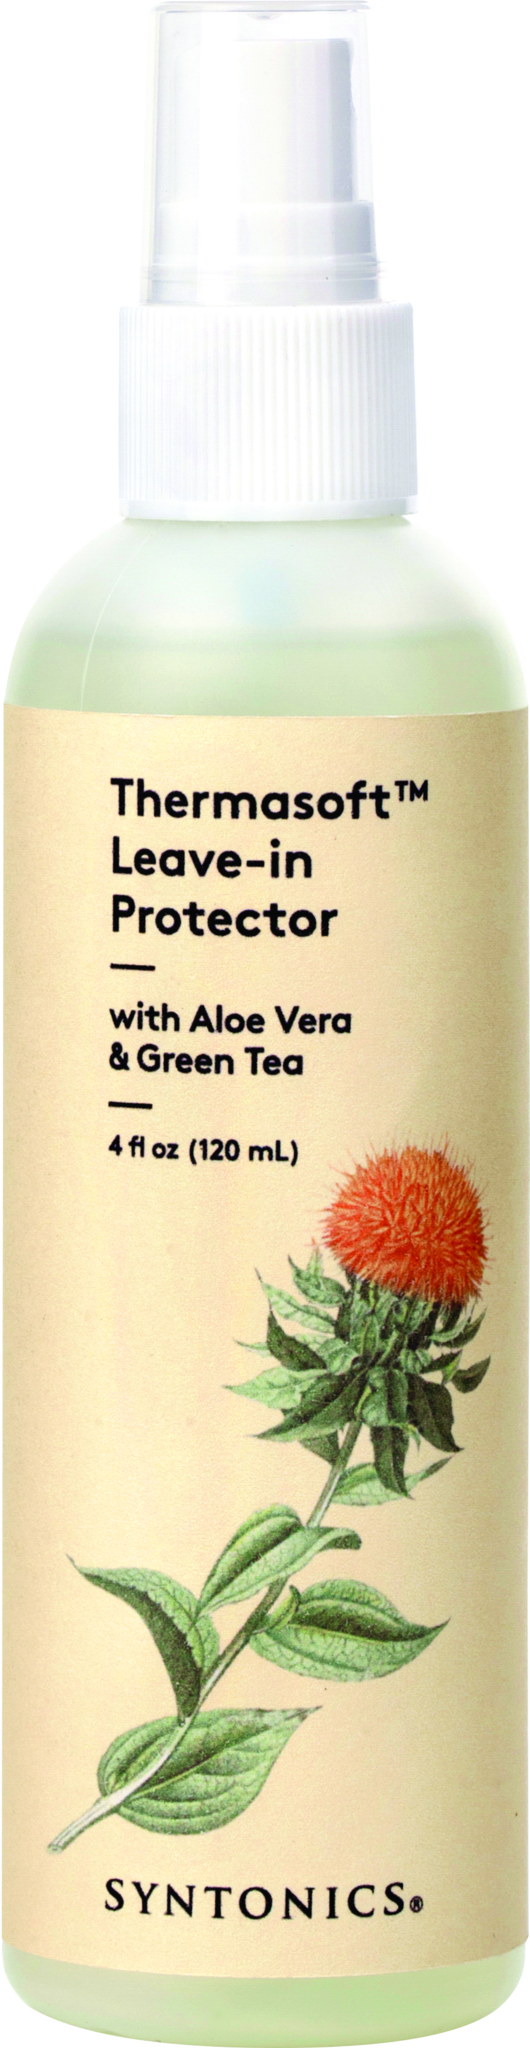 Thermasoft Leave-in Protector (STEP 2)